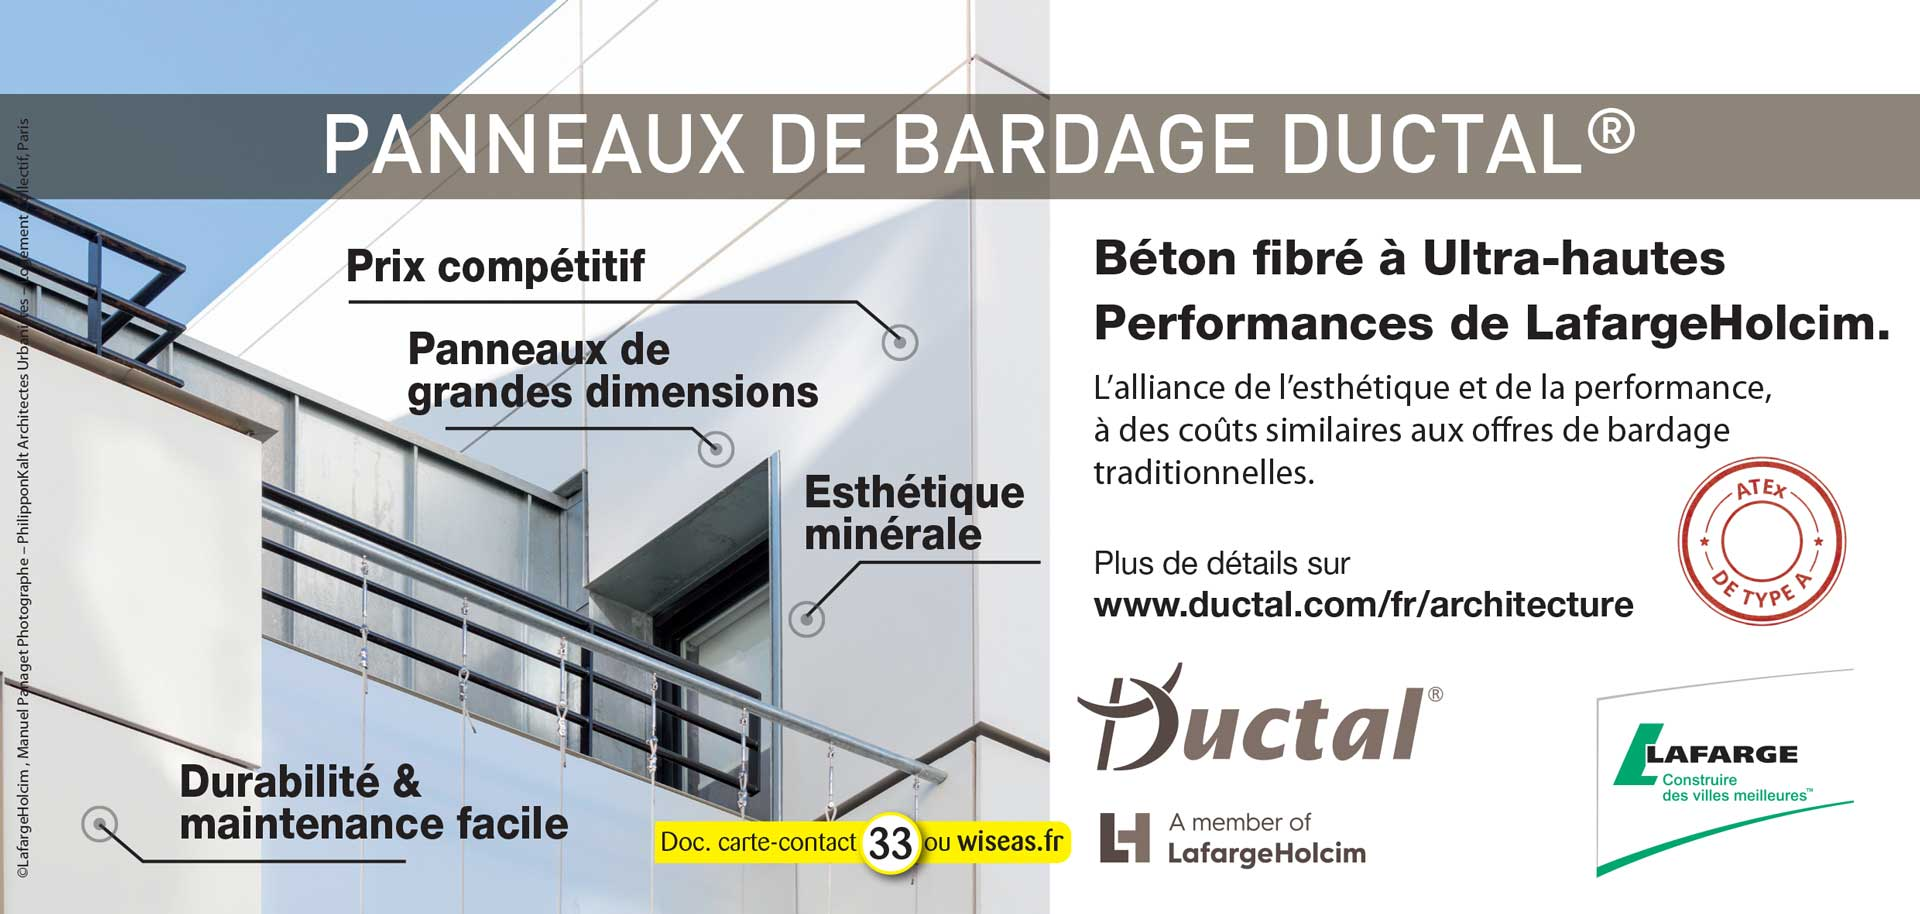 DUCTAL®